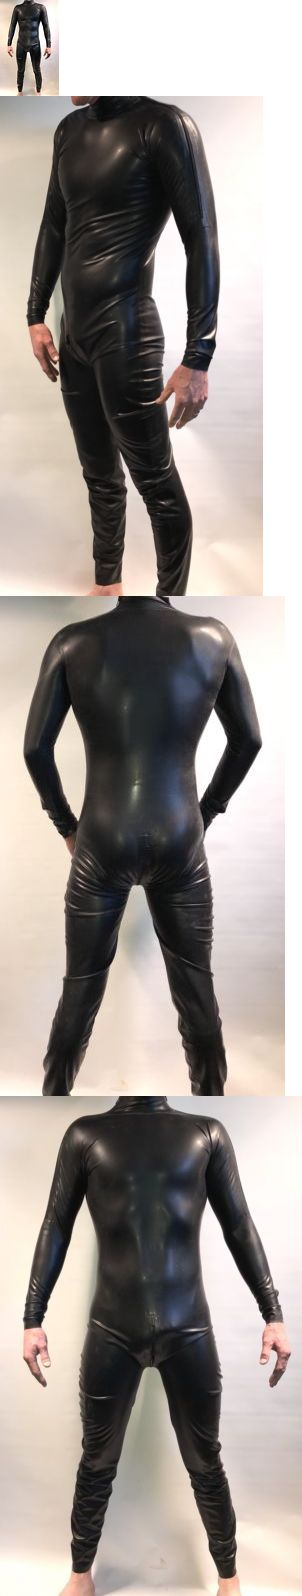 9b2c9ce86f Men 52762  Latex Rubber Catsuit Shoulder Zipper With Crotch Zipper -  BUY  IT NOW ONLY   198 on eBay!